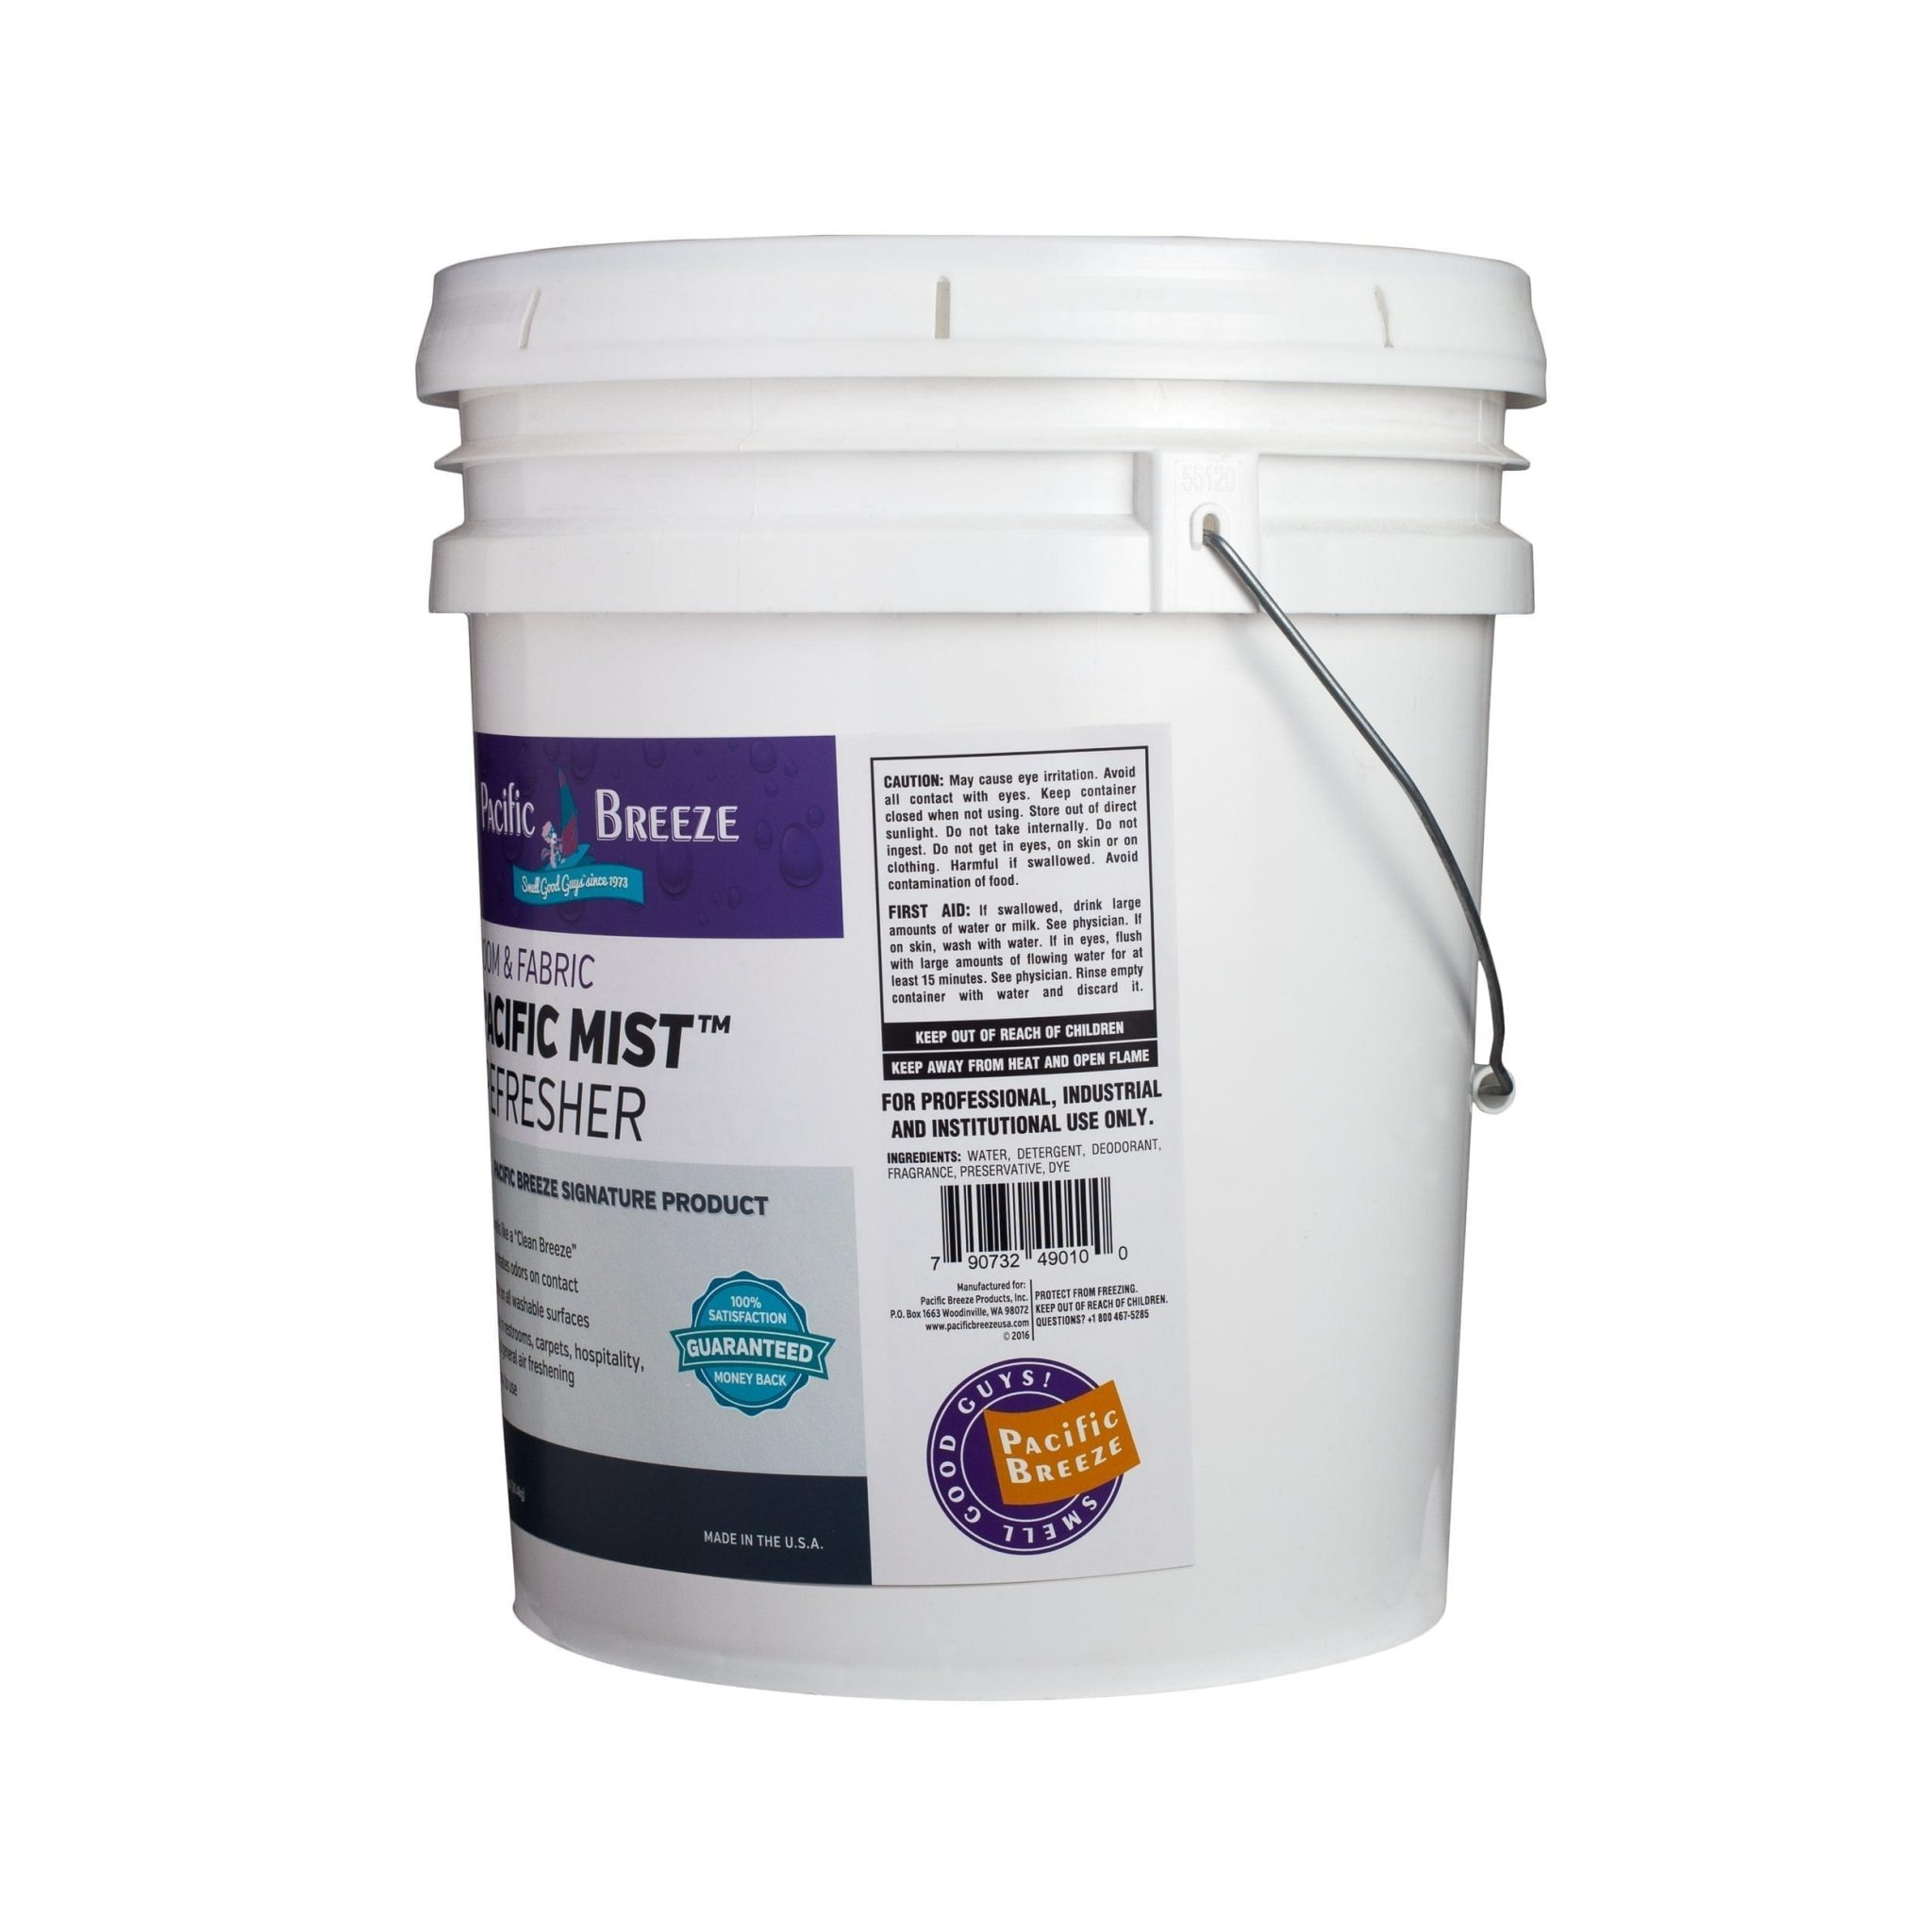 Pacific Mist™ Clean Breeze Room & Fabric Refresher - 5 Gallon Bucket